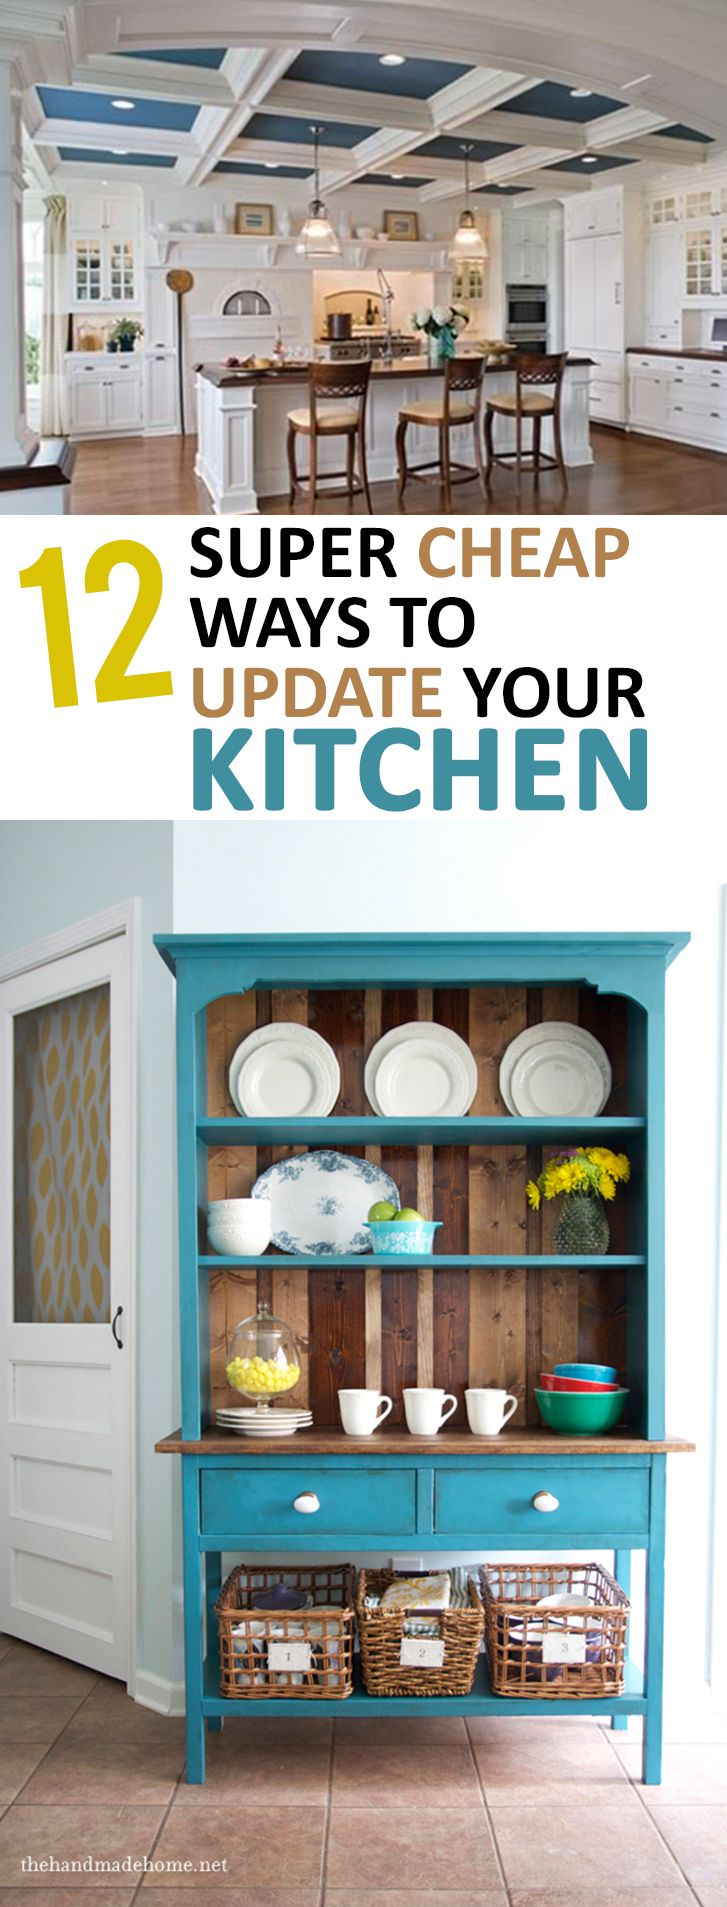 12 Ways to Update Your Kitchen | Decorating | Pinterest | Kitchens ...